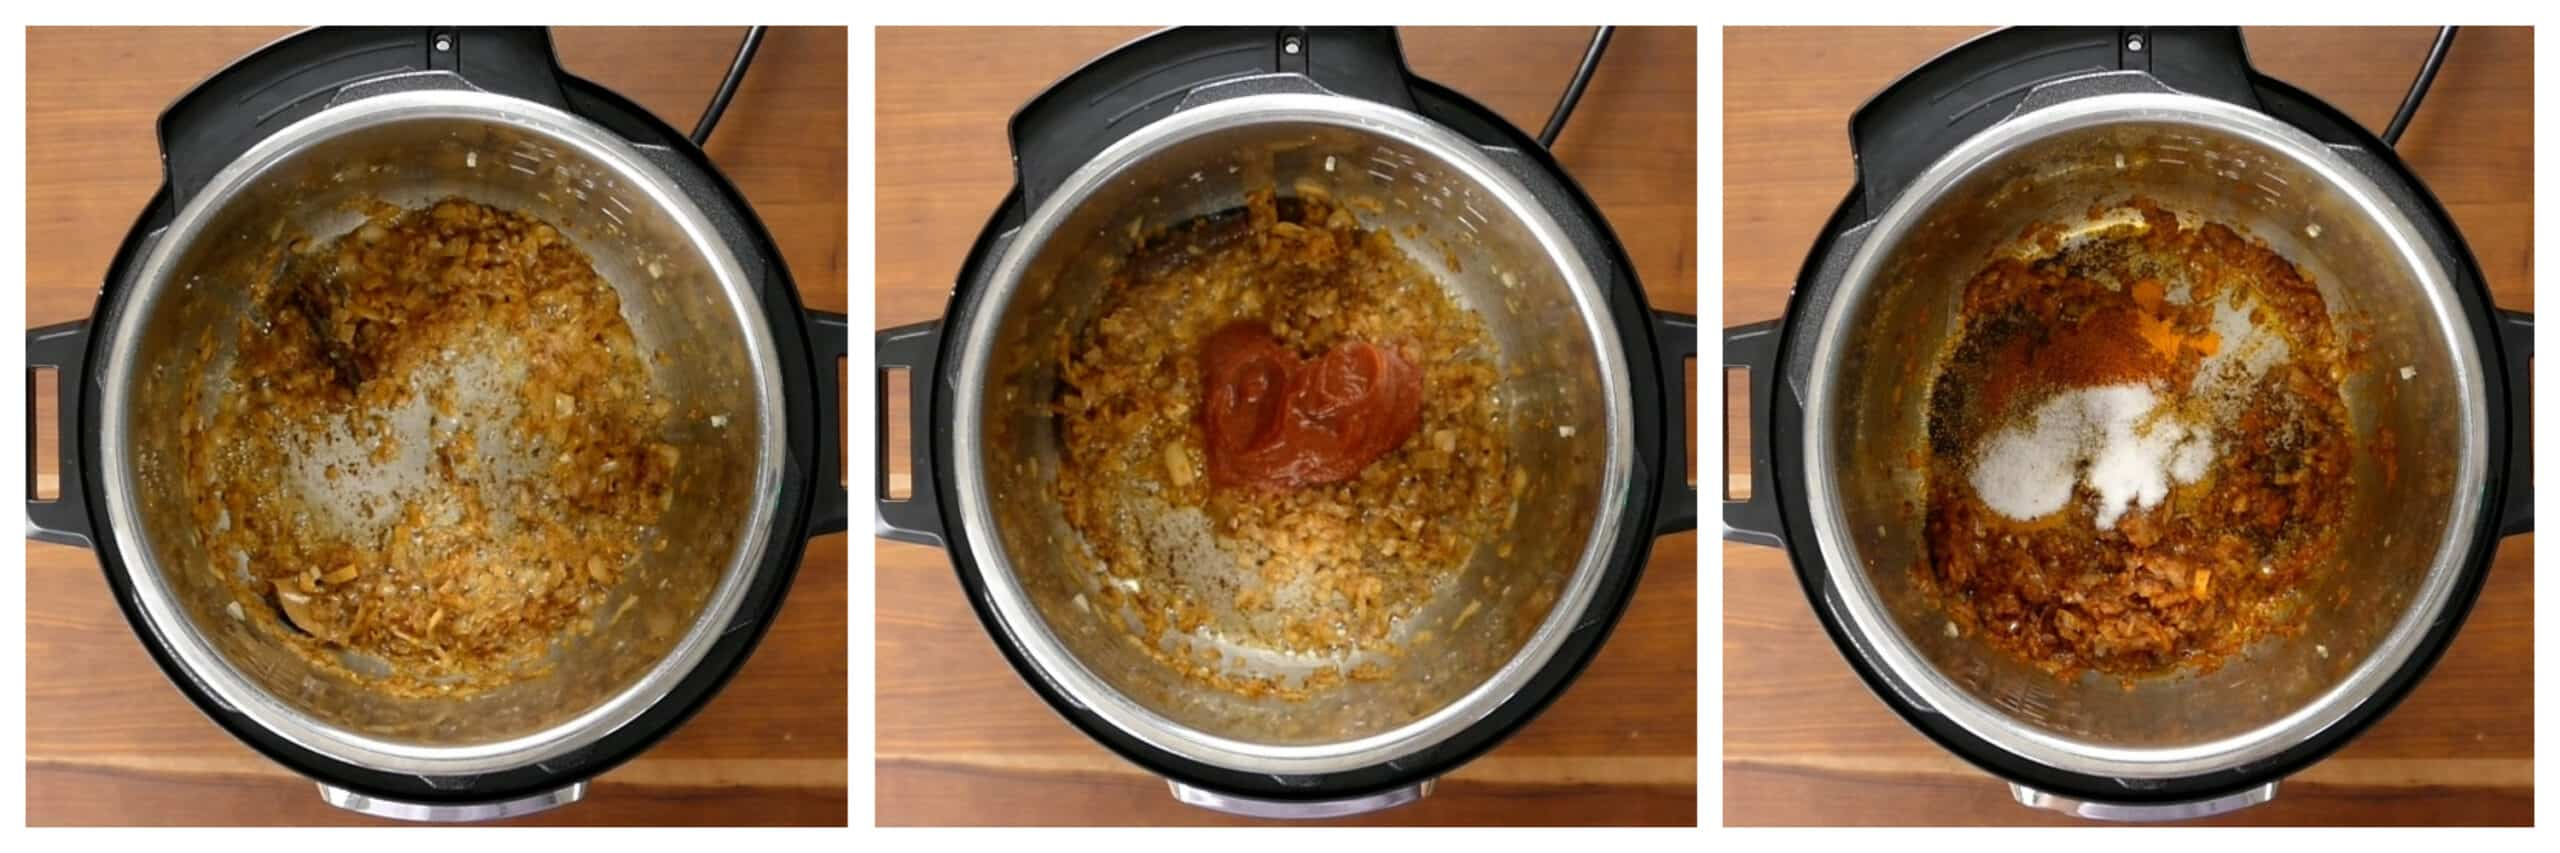 Instant Pot Chicken Curry Instructions saute onions, add tomato, add spices